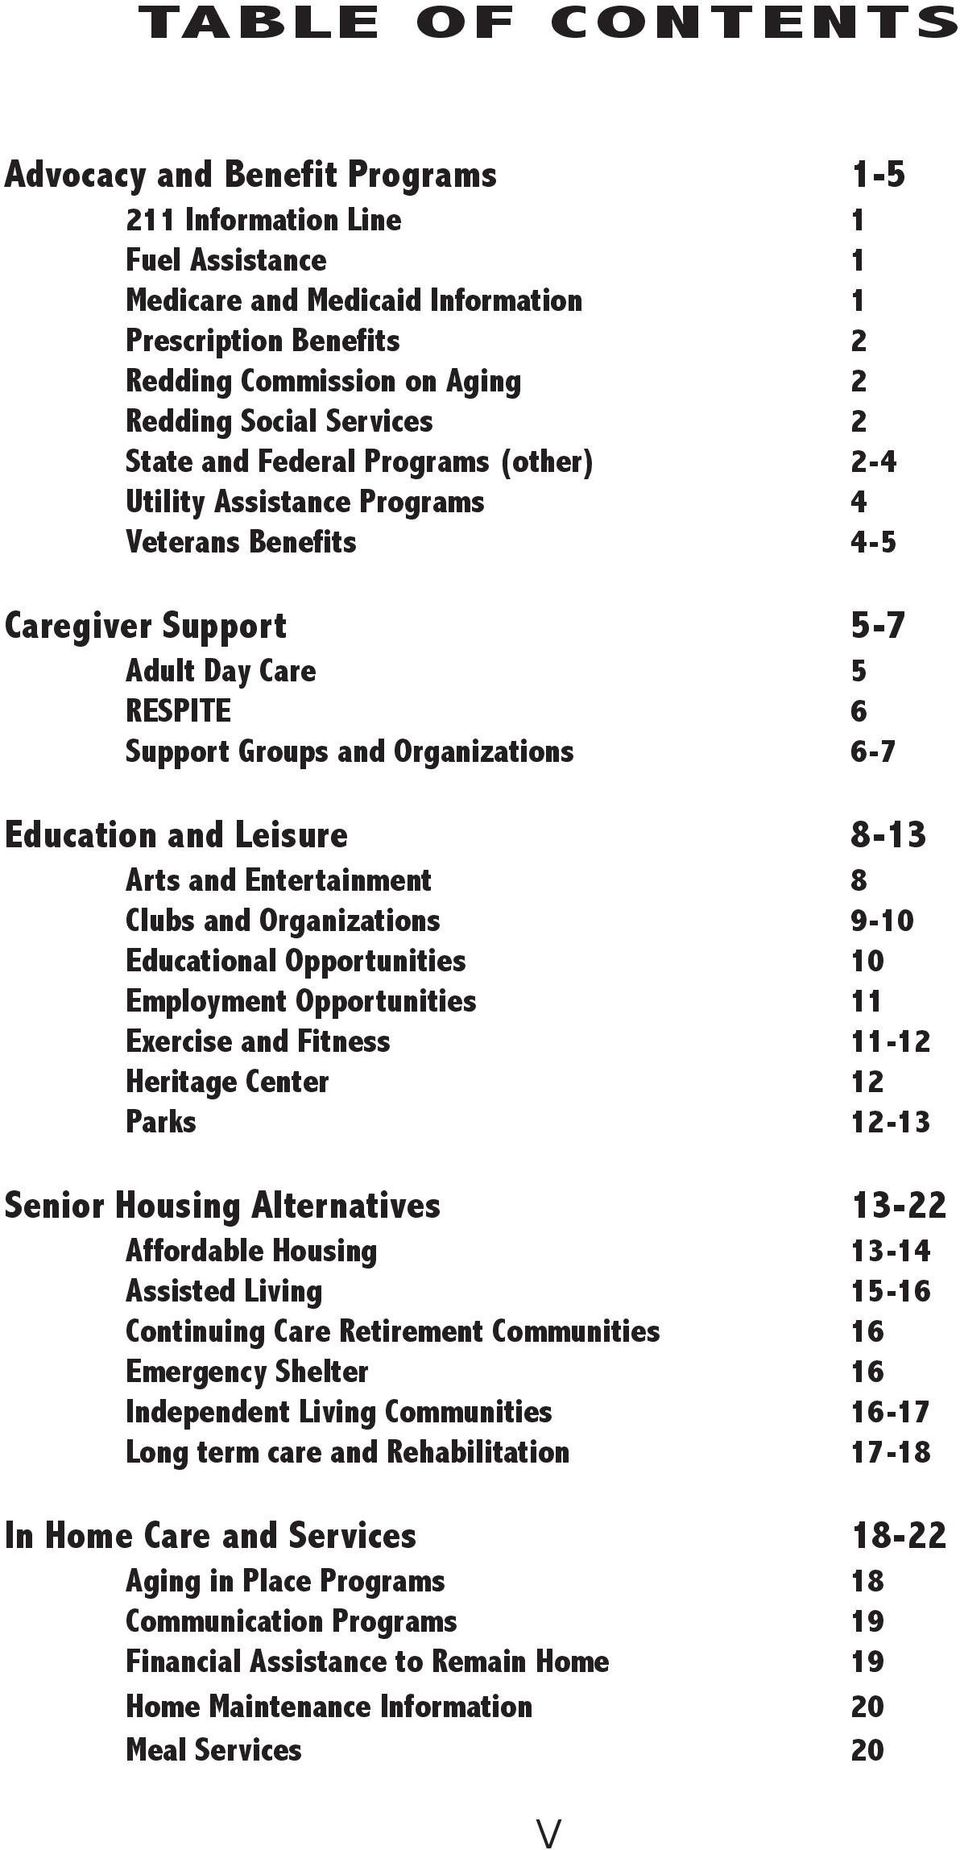 and Leisure 8-13 Arts and Entertainment 8 Clubs and Organizations 9-10 Educational Opportunities 10 Employment Opportunities 11 Exercise and Fitness 11-12 Heritage Center 12 Parks 12-13 Senior